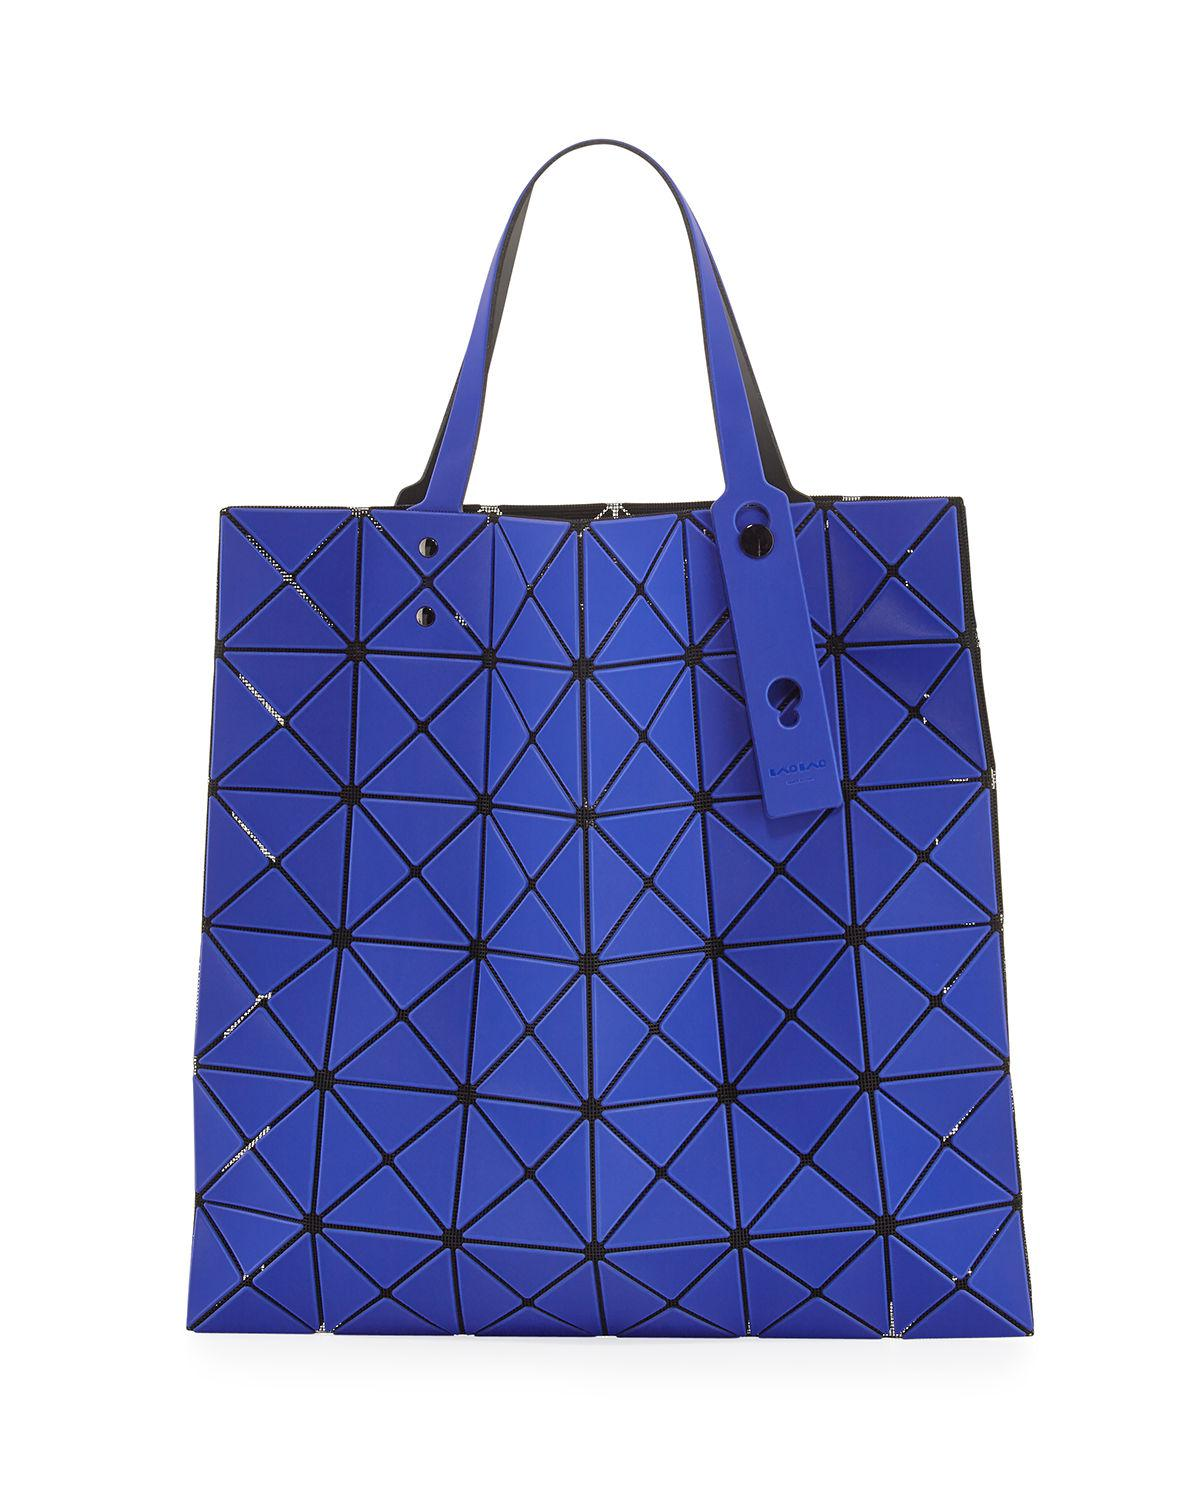 c57e2d447a75 Lyst - Bao Bao Issey Miyake Lucent Frost Tote Bag in Blue